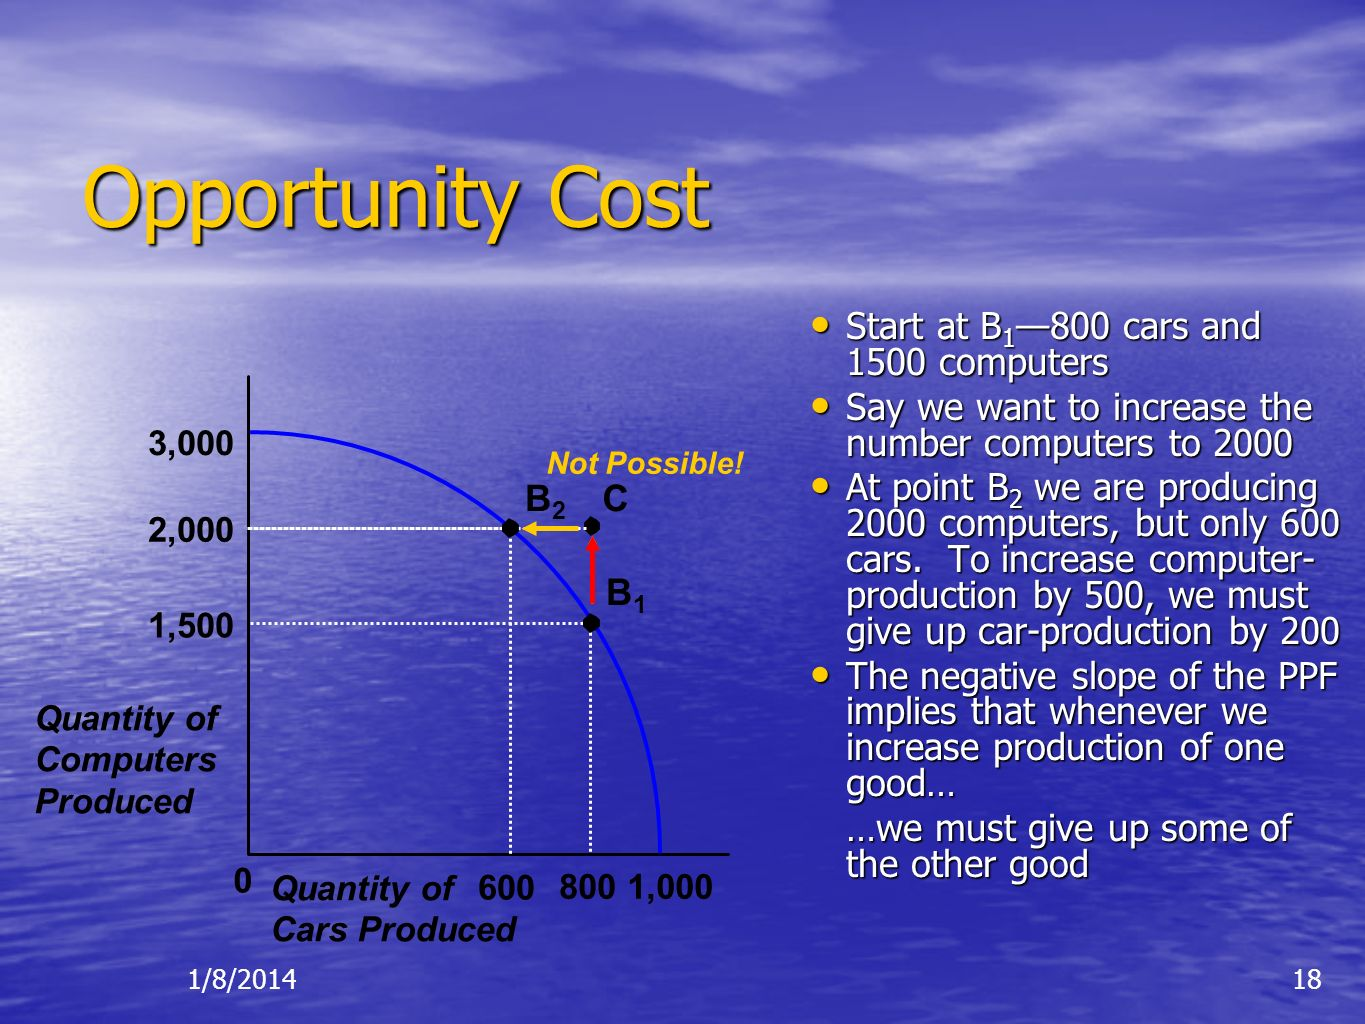 Opportunity Cost Start at B1—800 cars and 1500 computers